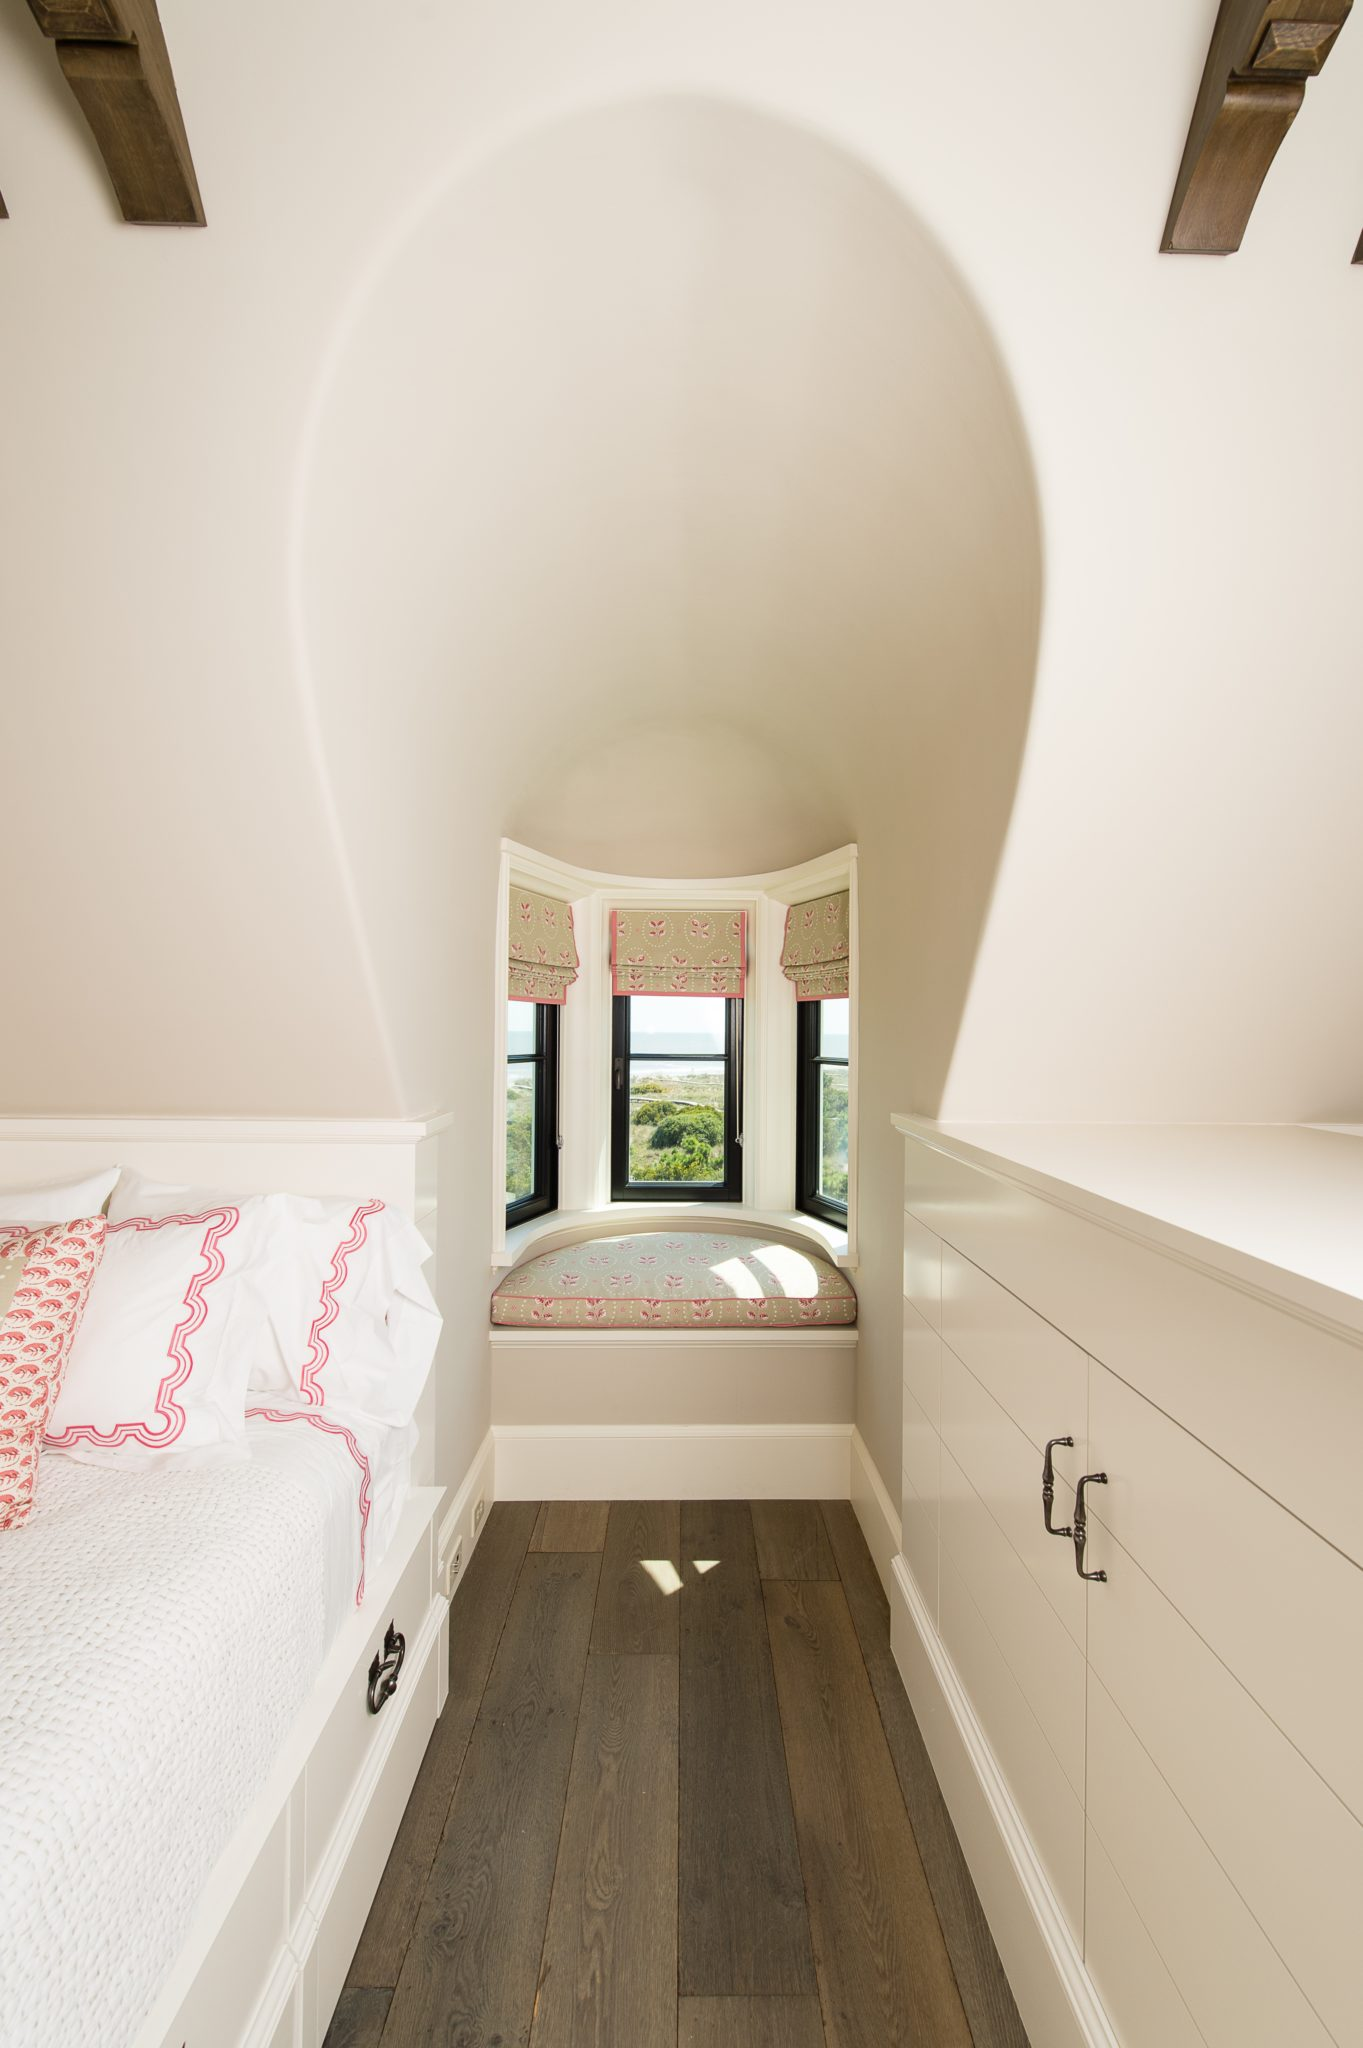 Bunk room curved bay window seat and dormer with built-in cabinets by Island Architects